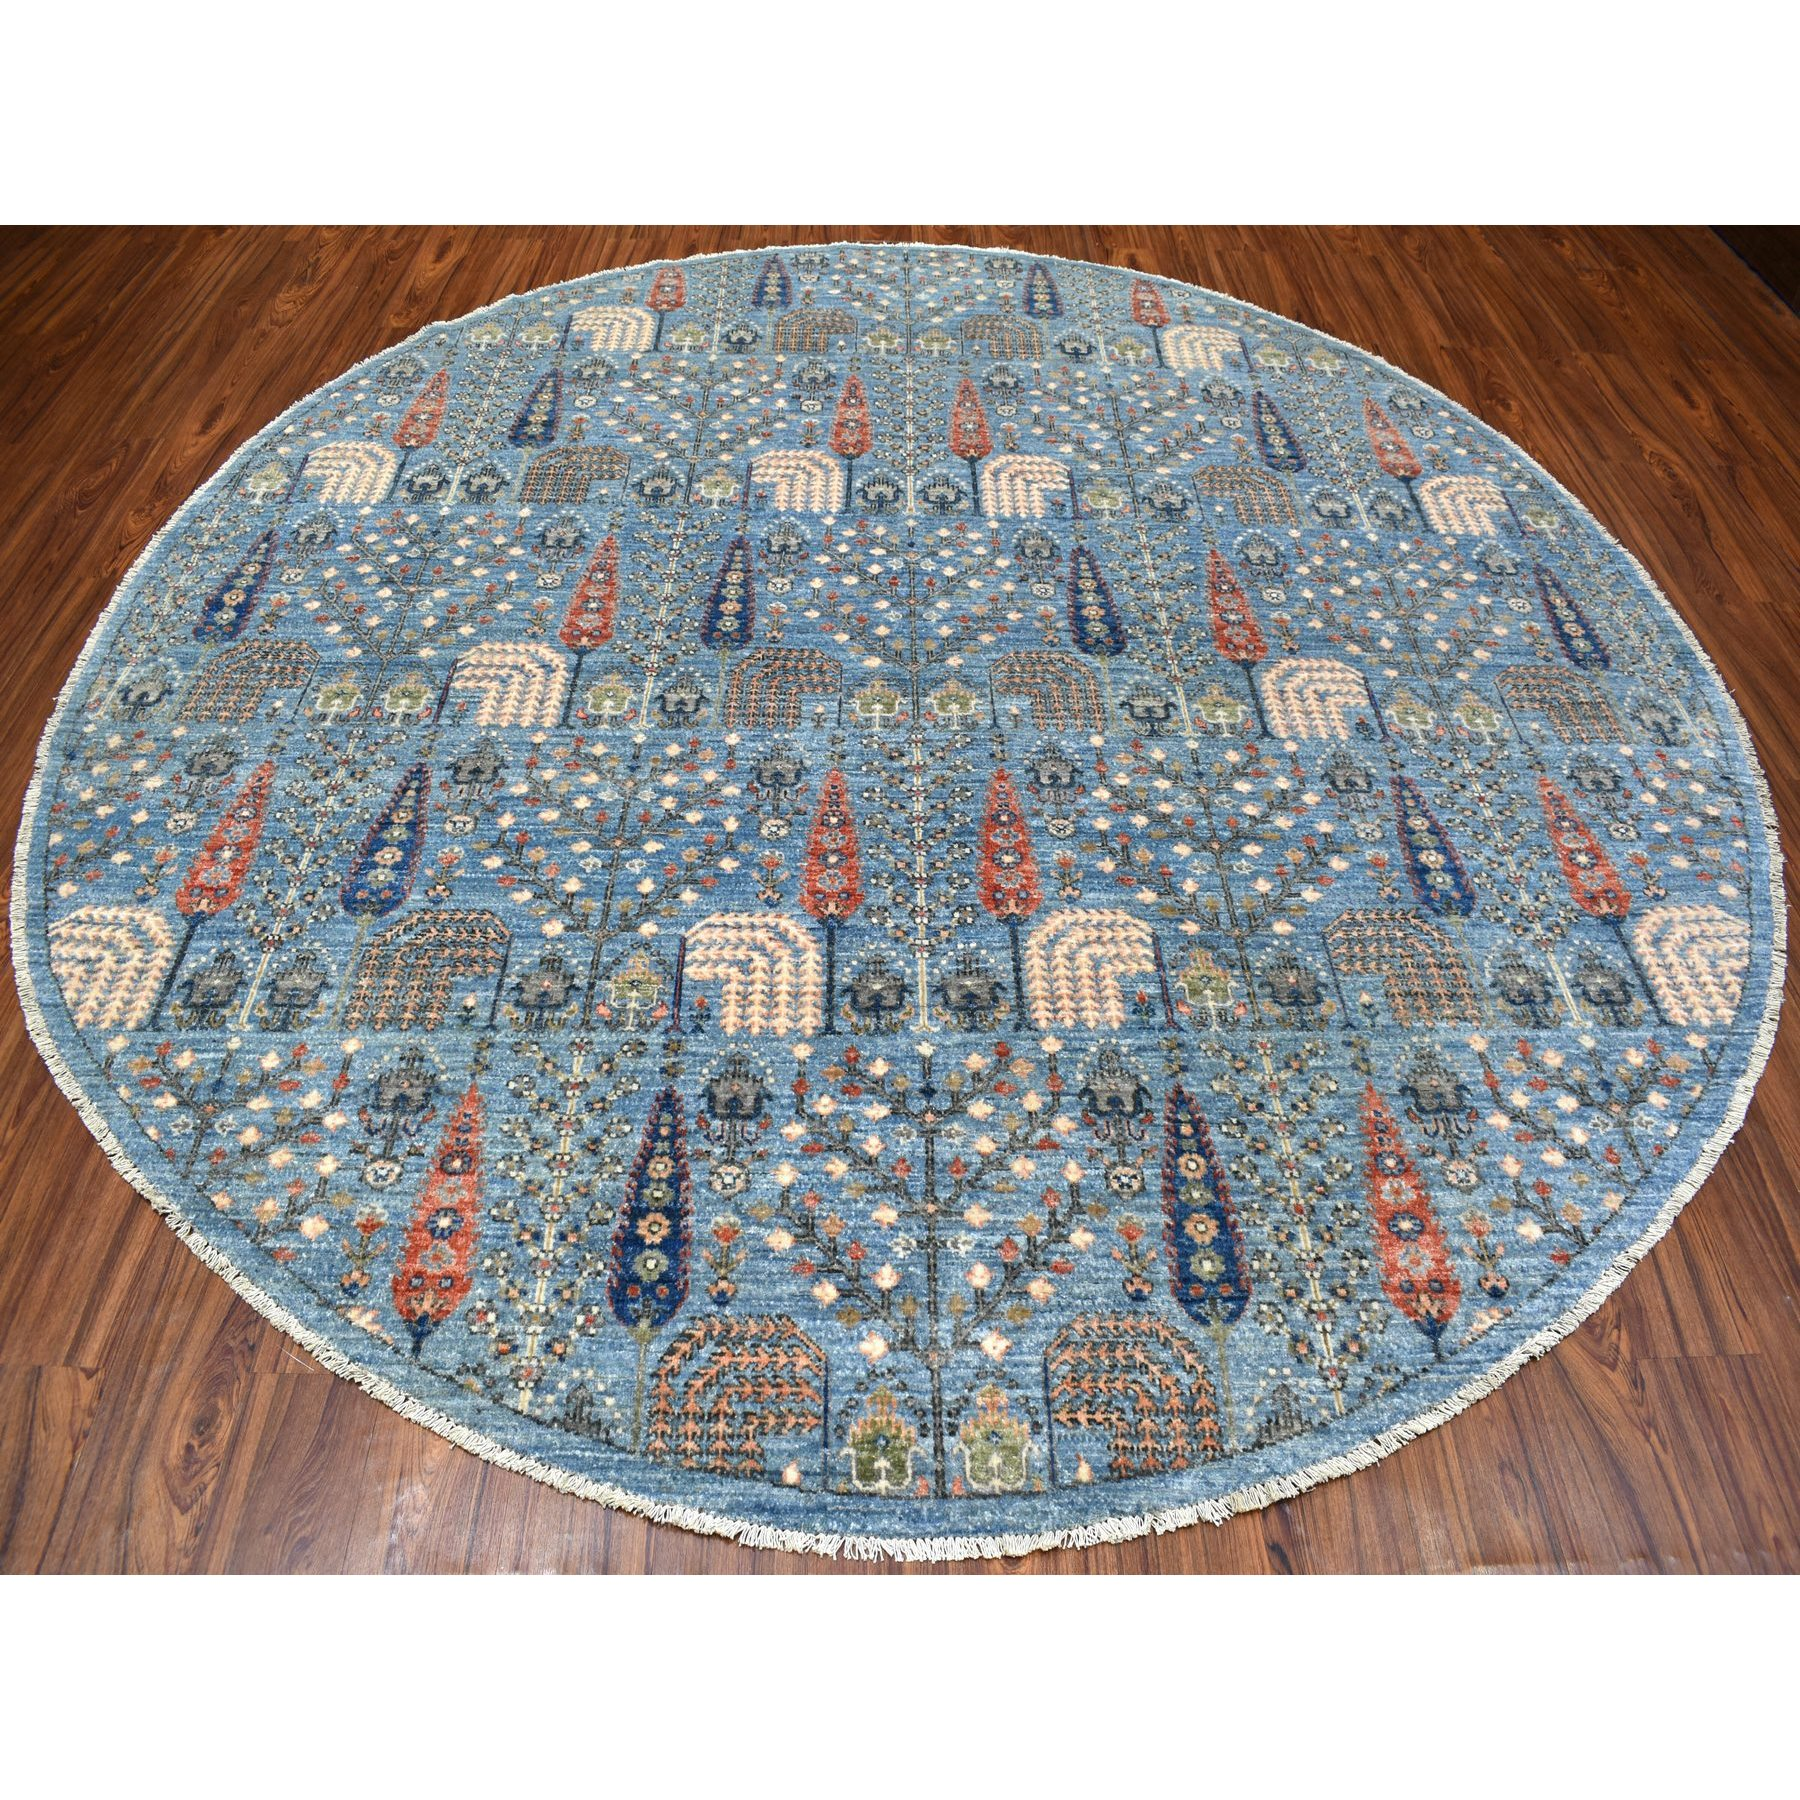 """9'4""""x9'4"""" Round Blue Willow And Cypress Tree Design Organic Wool Hand Knotted Rug"""